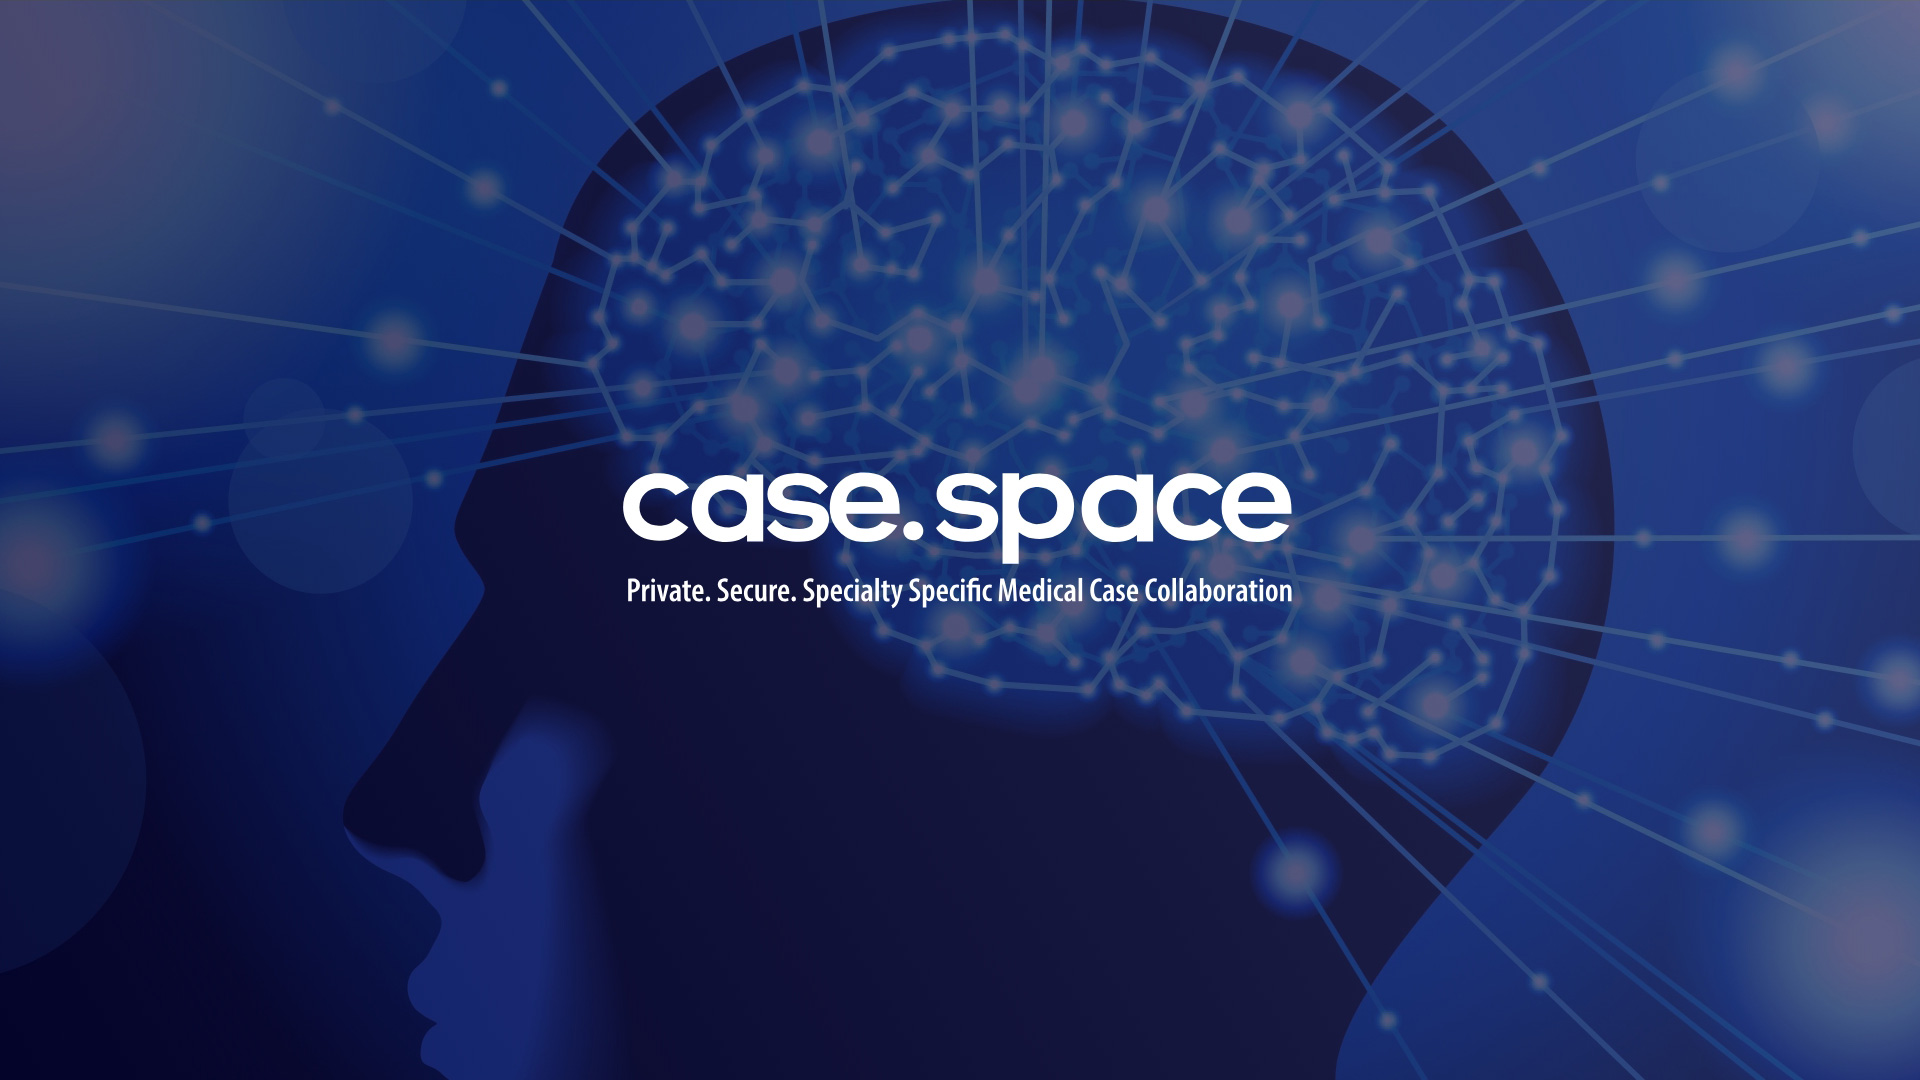 CaseSpace